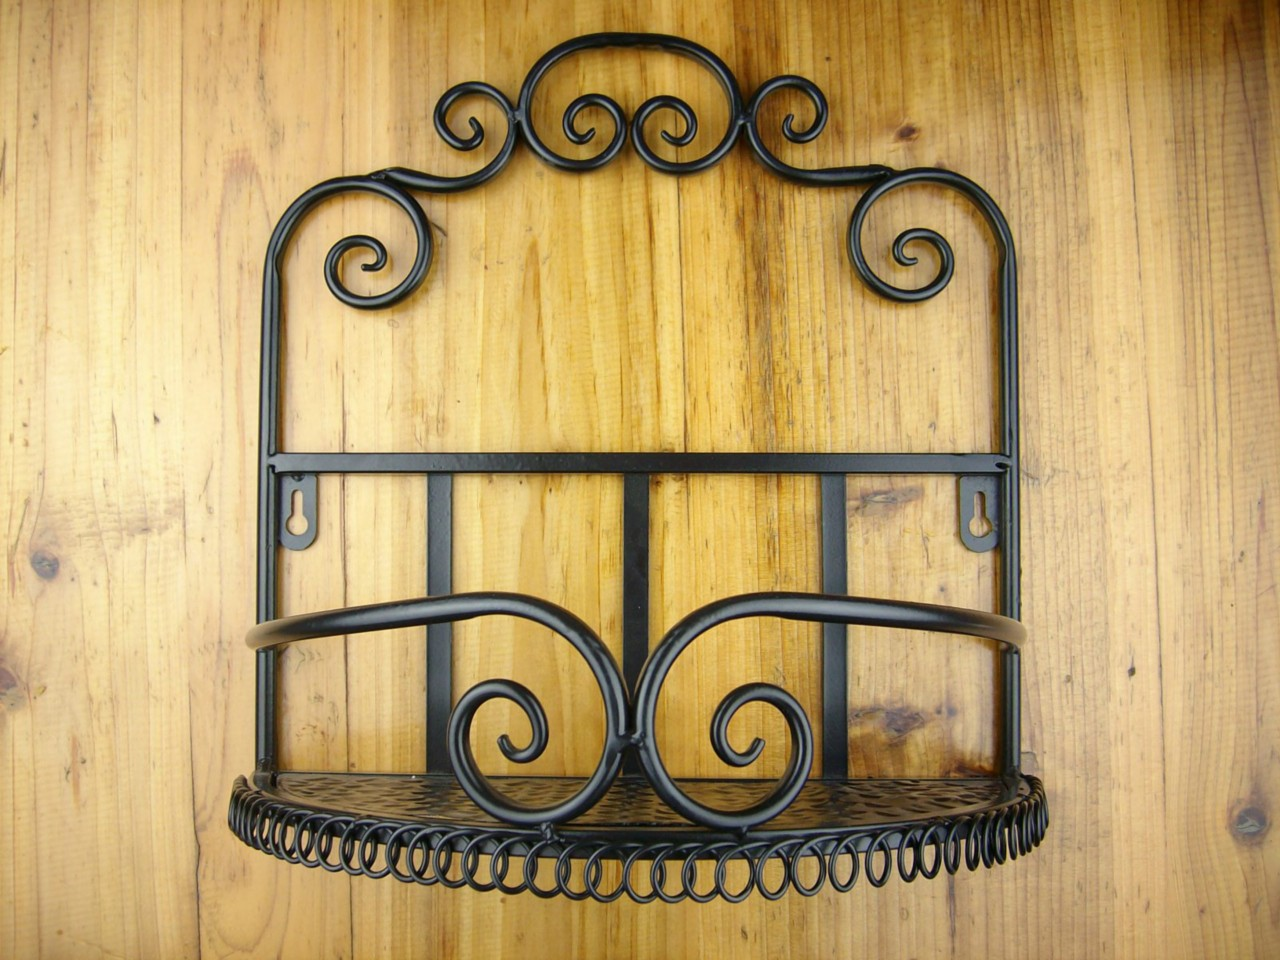 design iron bathroom toilet decorative wall shelf storage rack